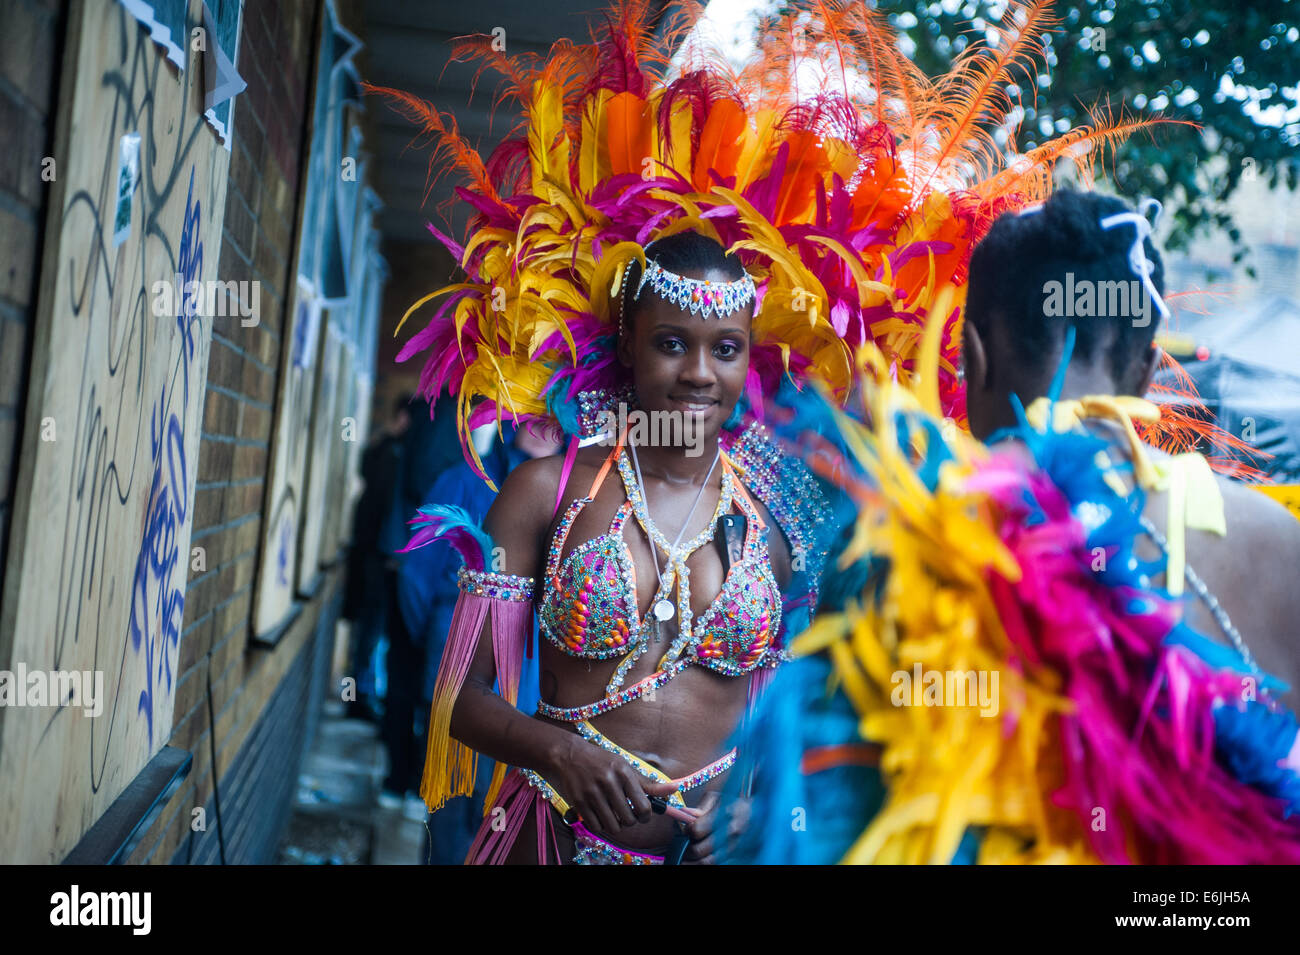 London, UK. 25th Aug, 2014. a reveller during the Notting Hill Carnival in London. Credit:  Piero Cruciatti/Alamy - Stock Image